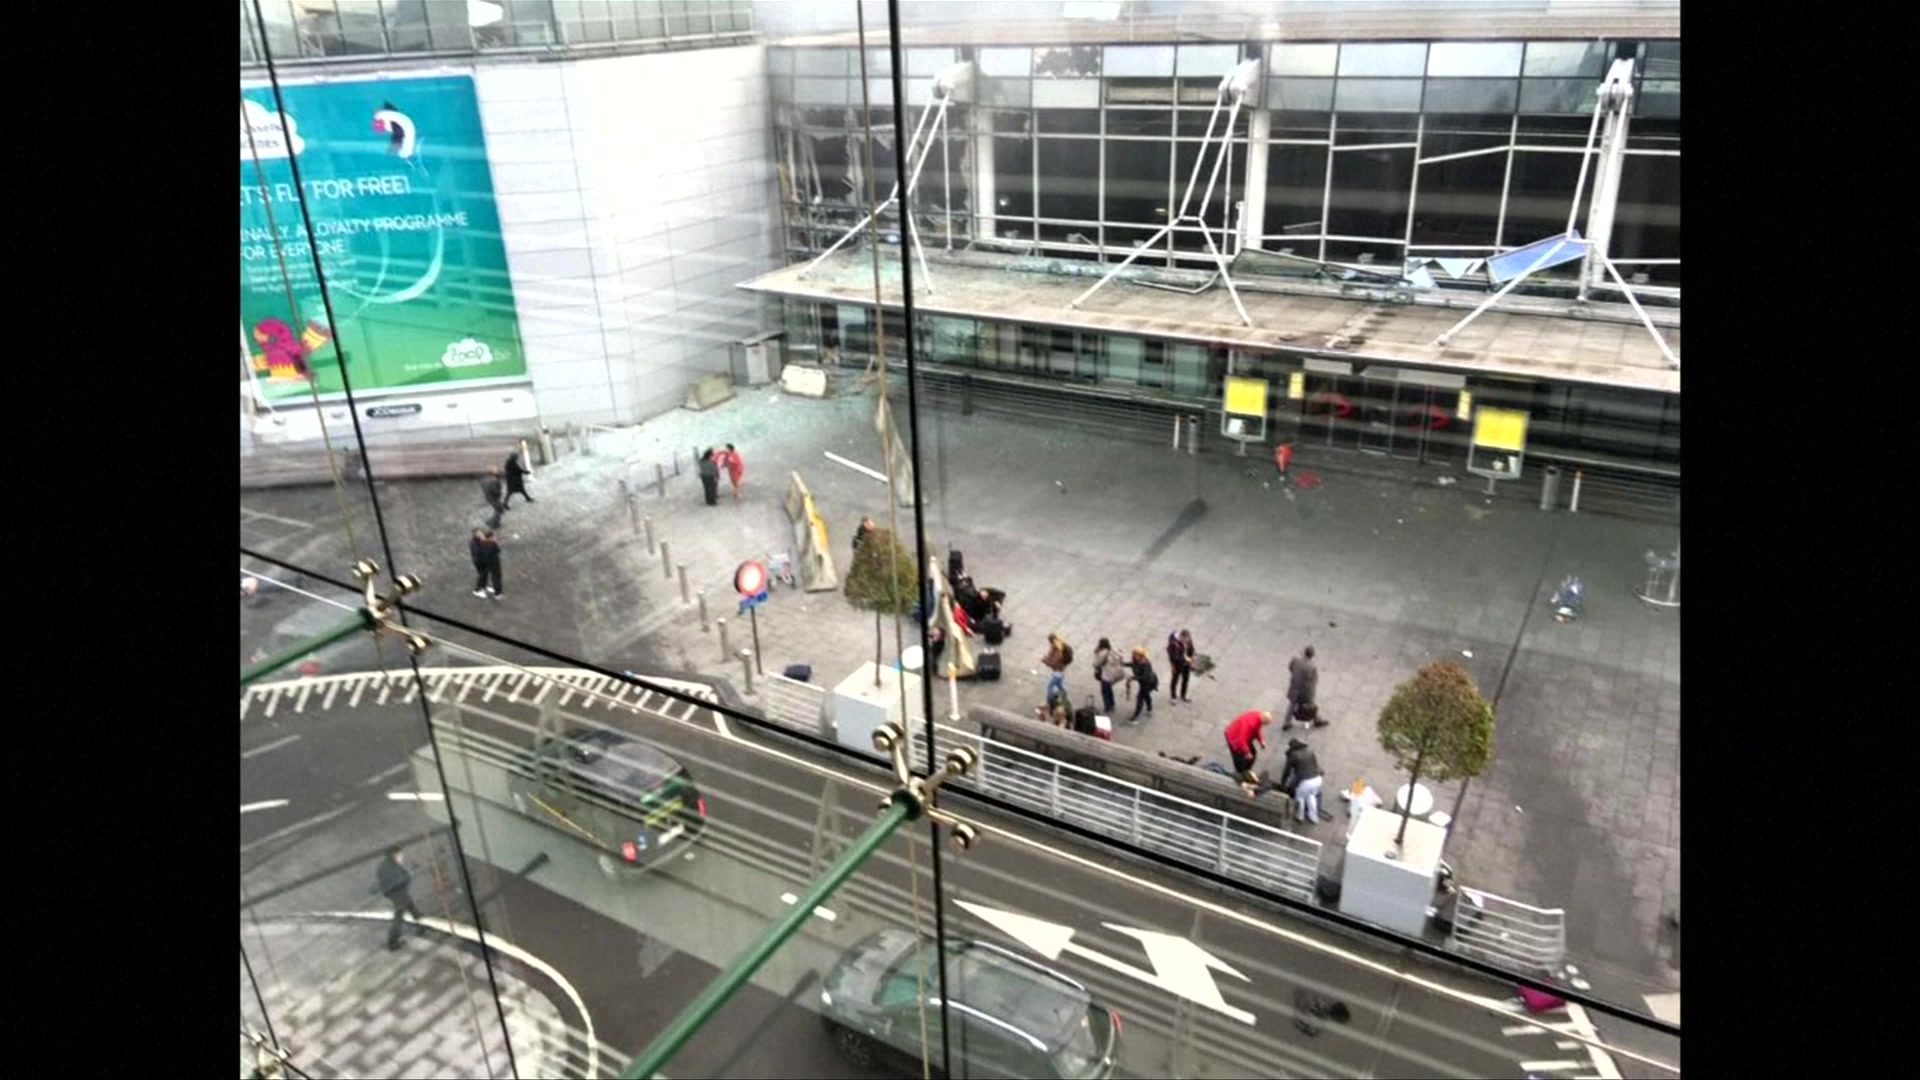 Aftermath of Attack on Brussels Airport